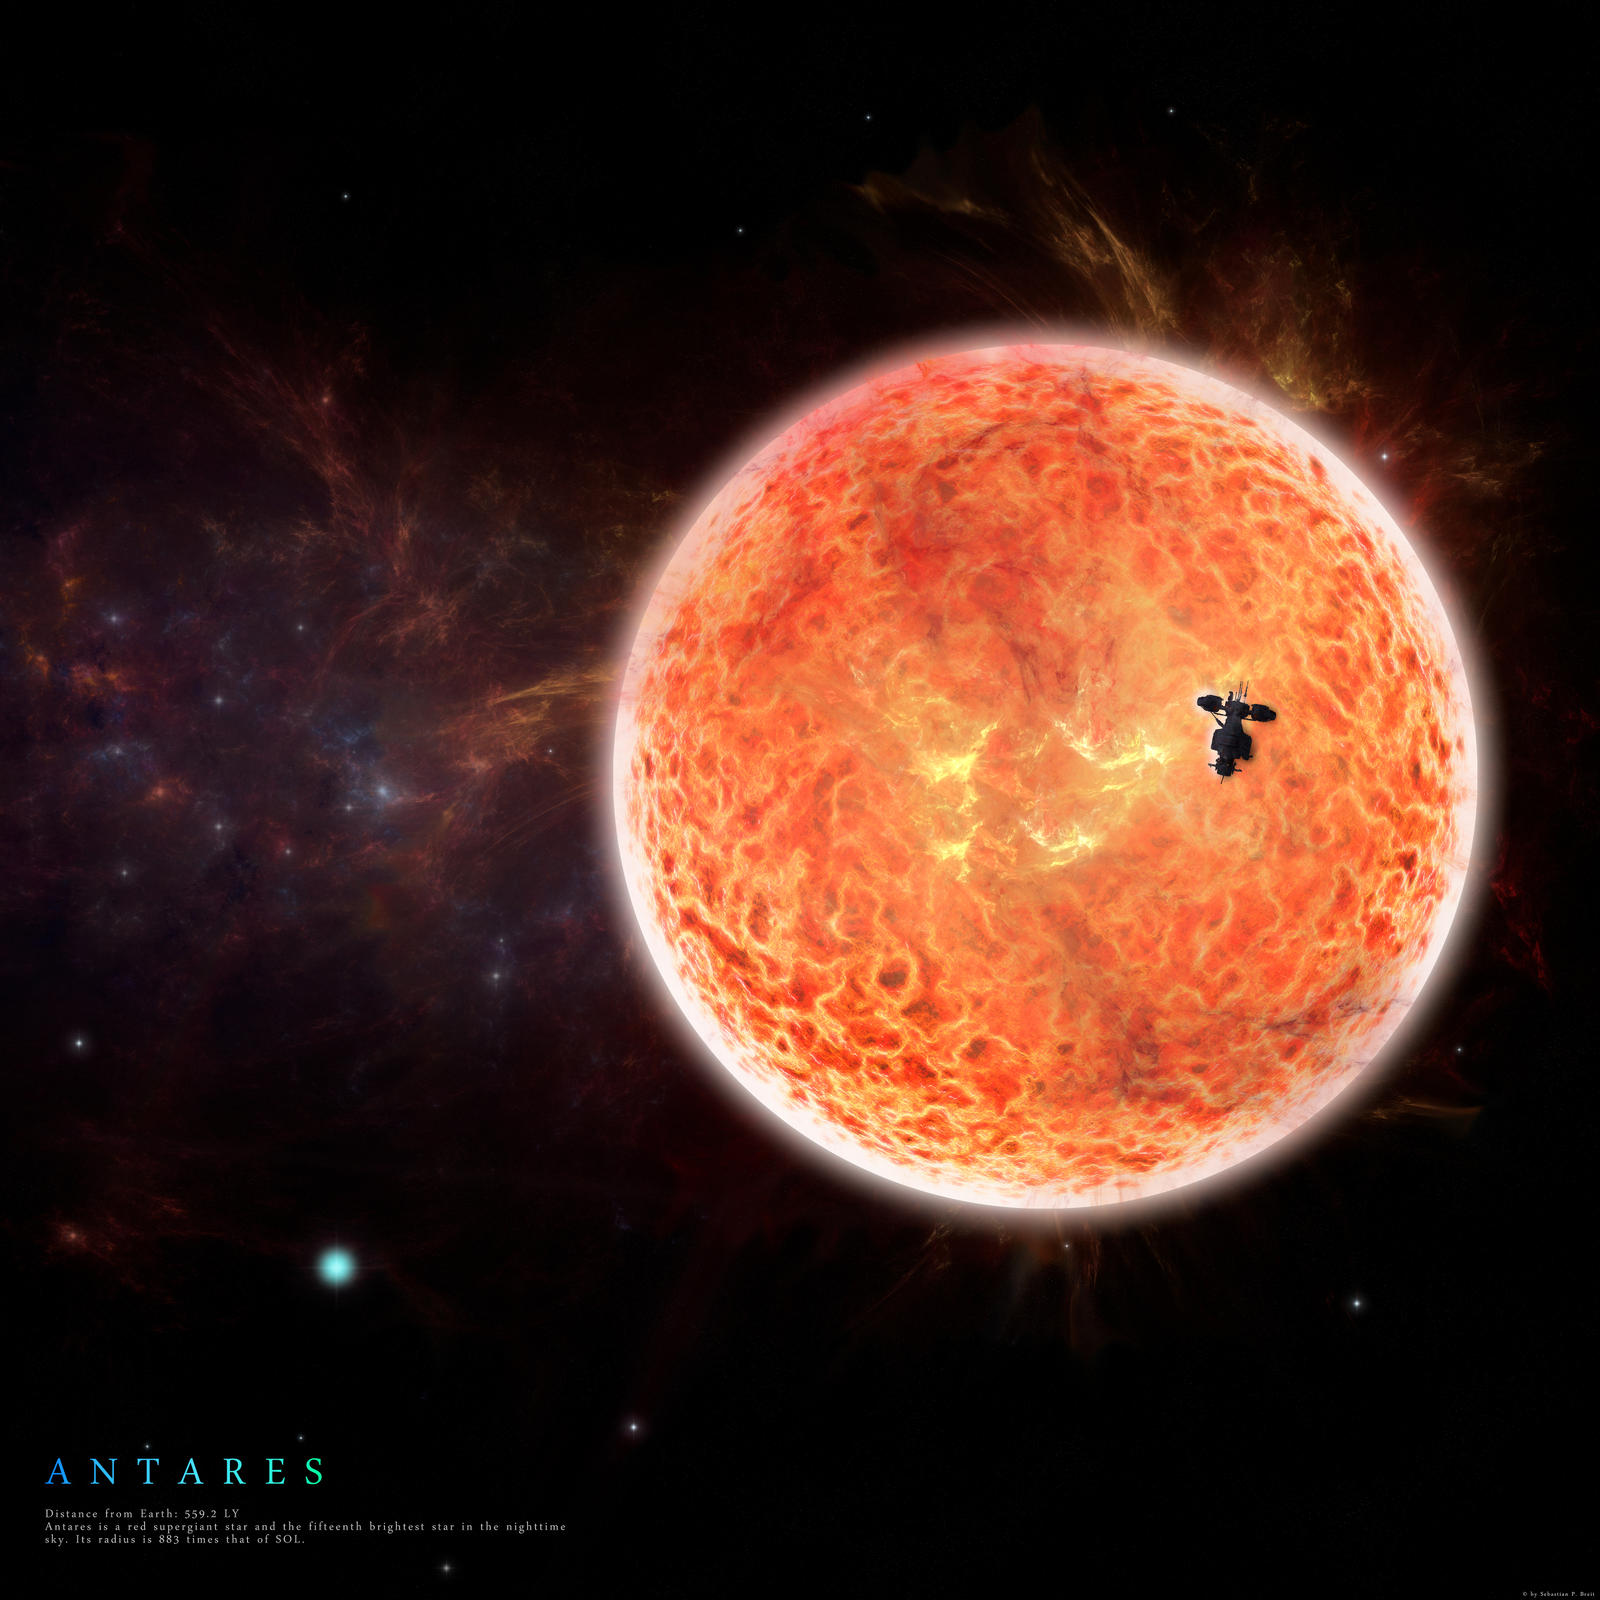 The Watcher Of Antares By Stratomunchkin On Deviantart